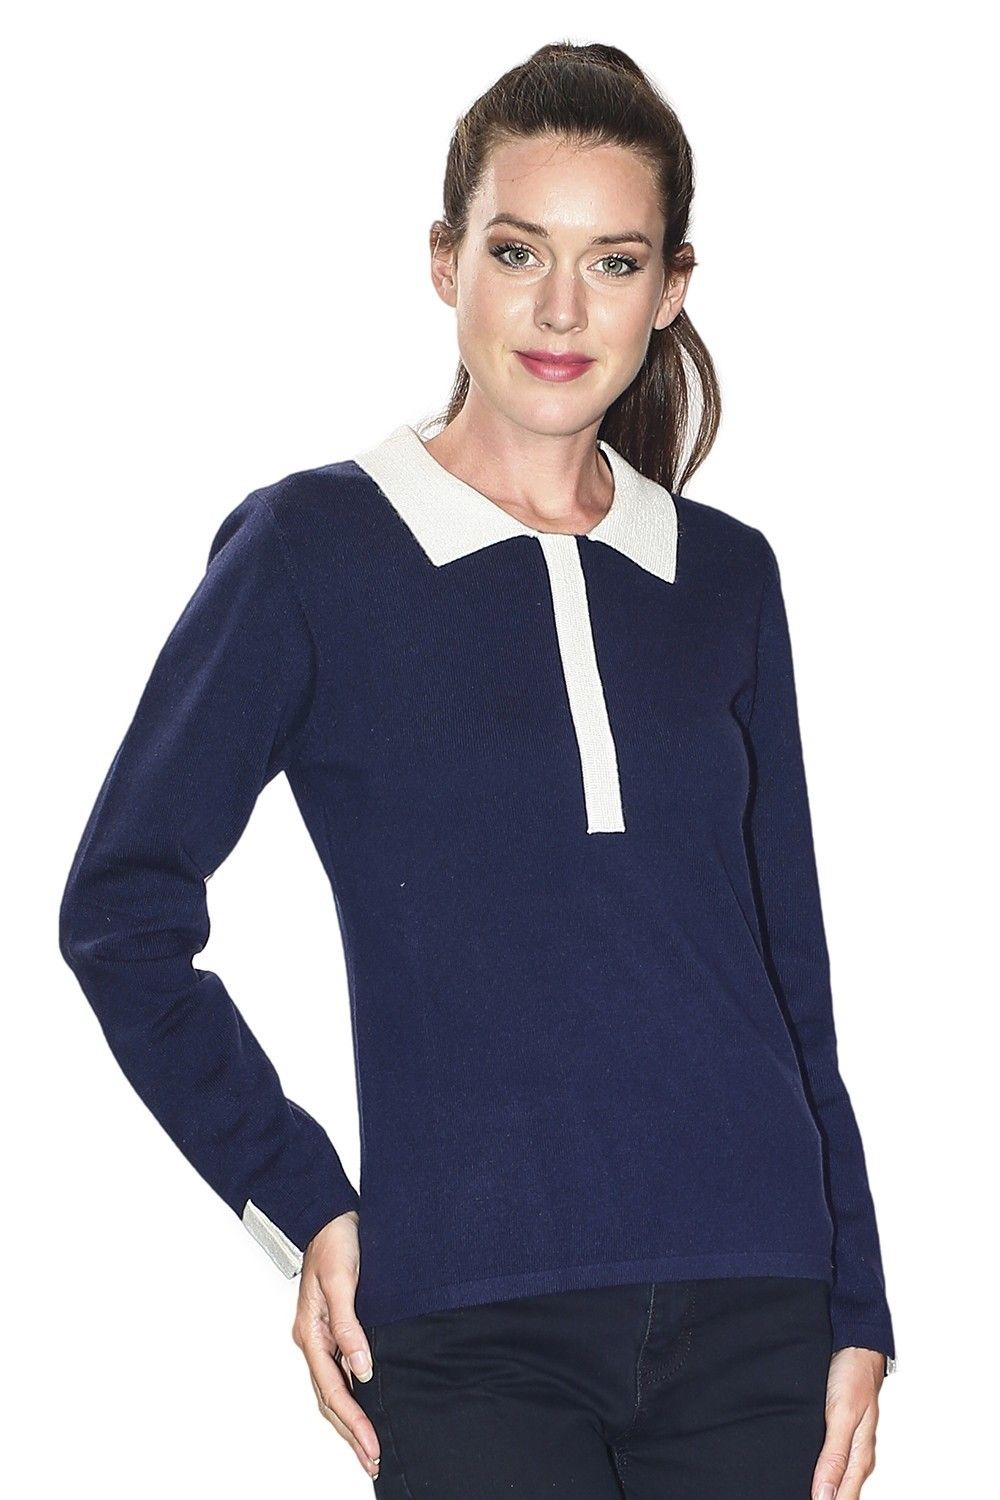 C&JO Two-tone Peter Pan Collar Sweater in Navy